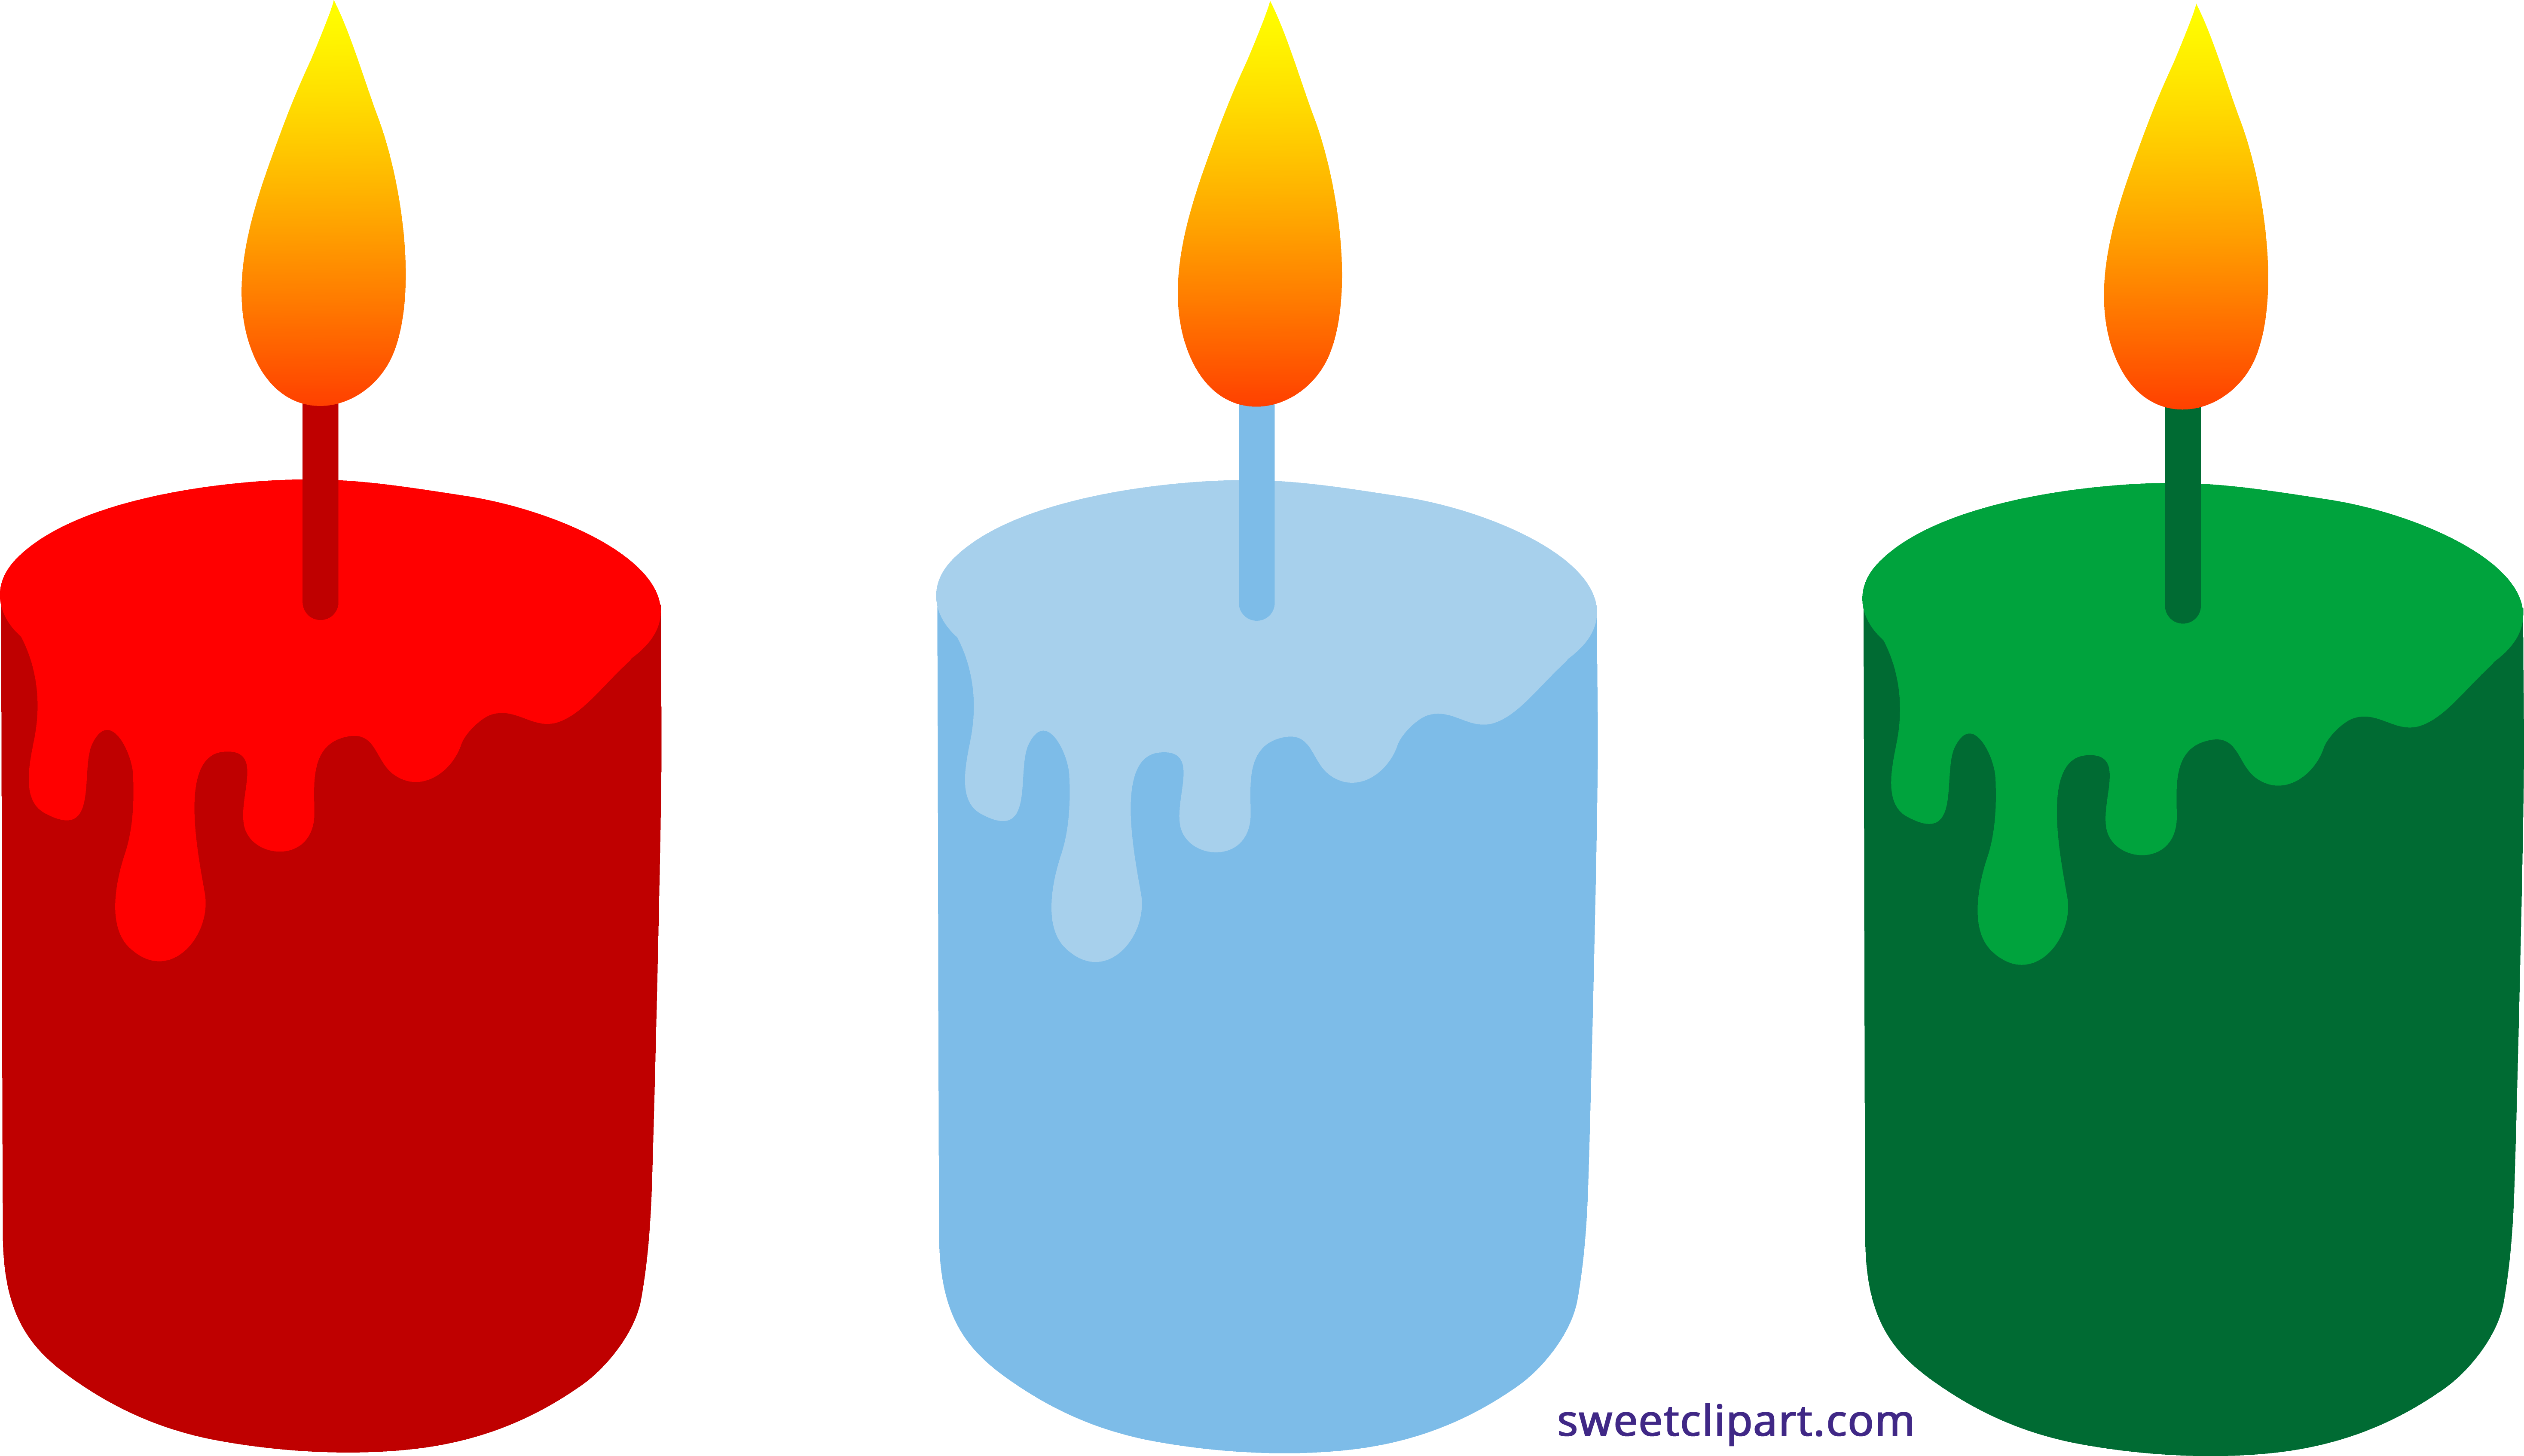 Christmas candlelight clipart clipart transparent Christmas Candle Clipart at GetDrawings.com | Free for personal use ... clipart transparent